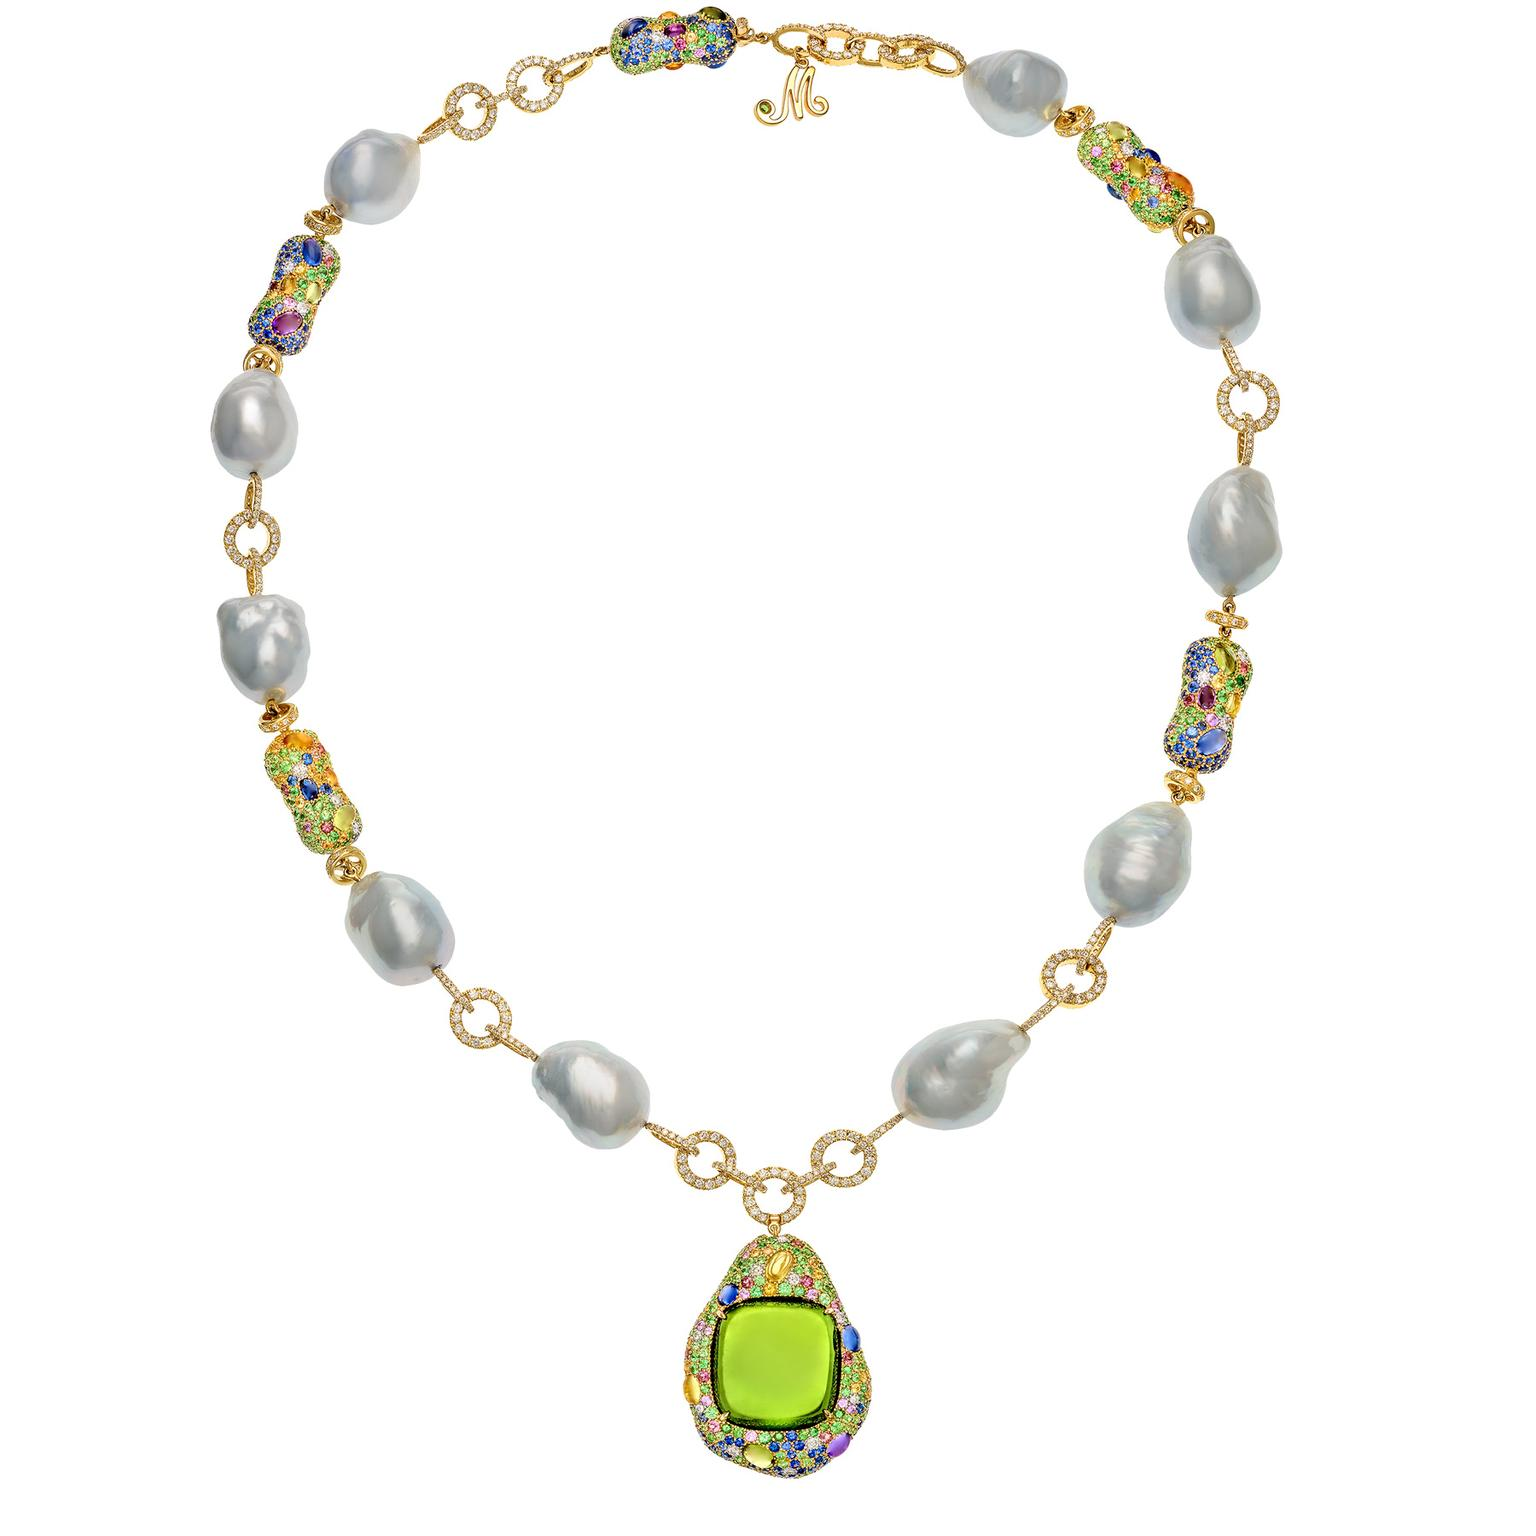 Margot McKinney green tourmaline and baroque pearl pendant